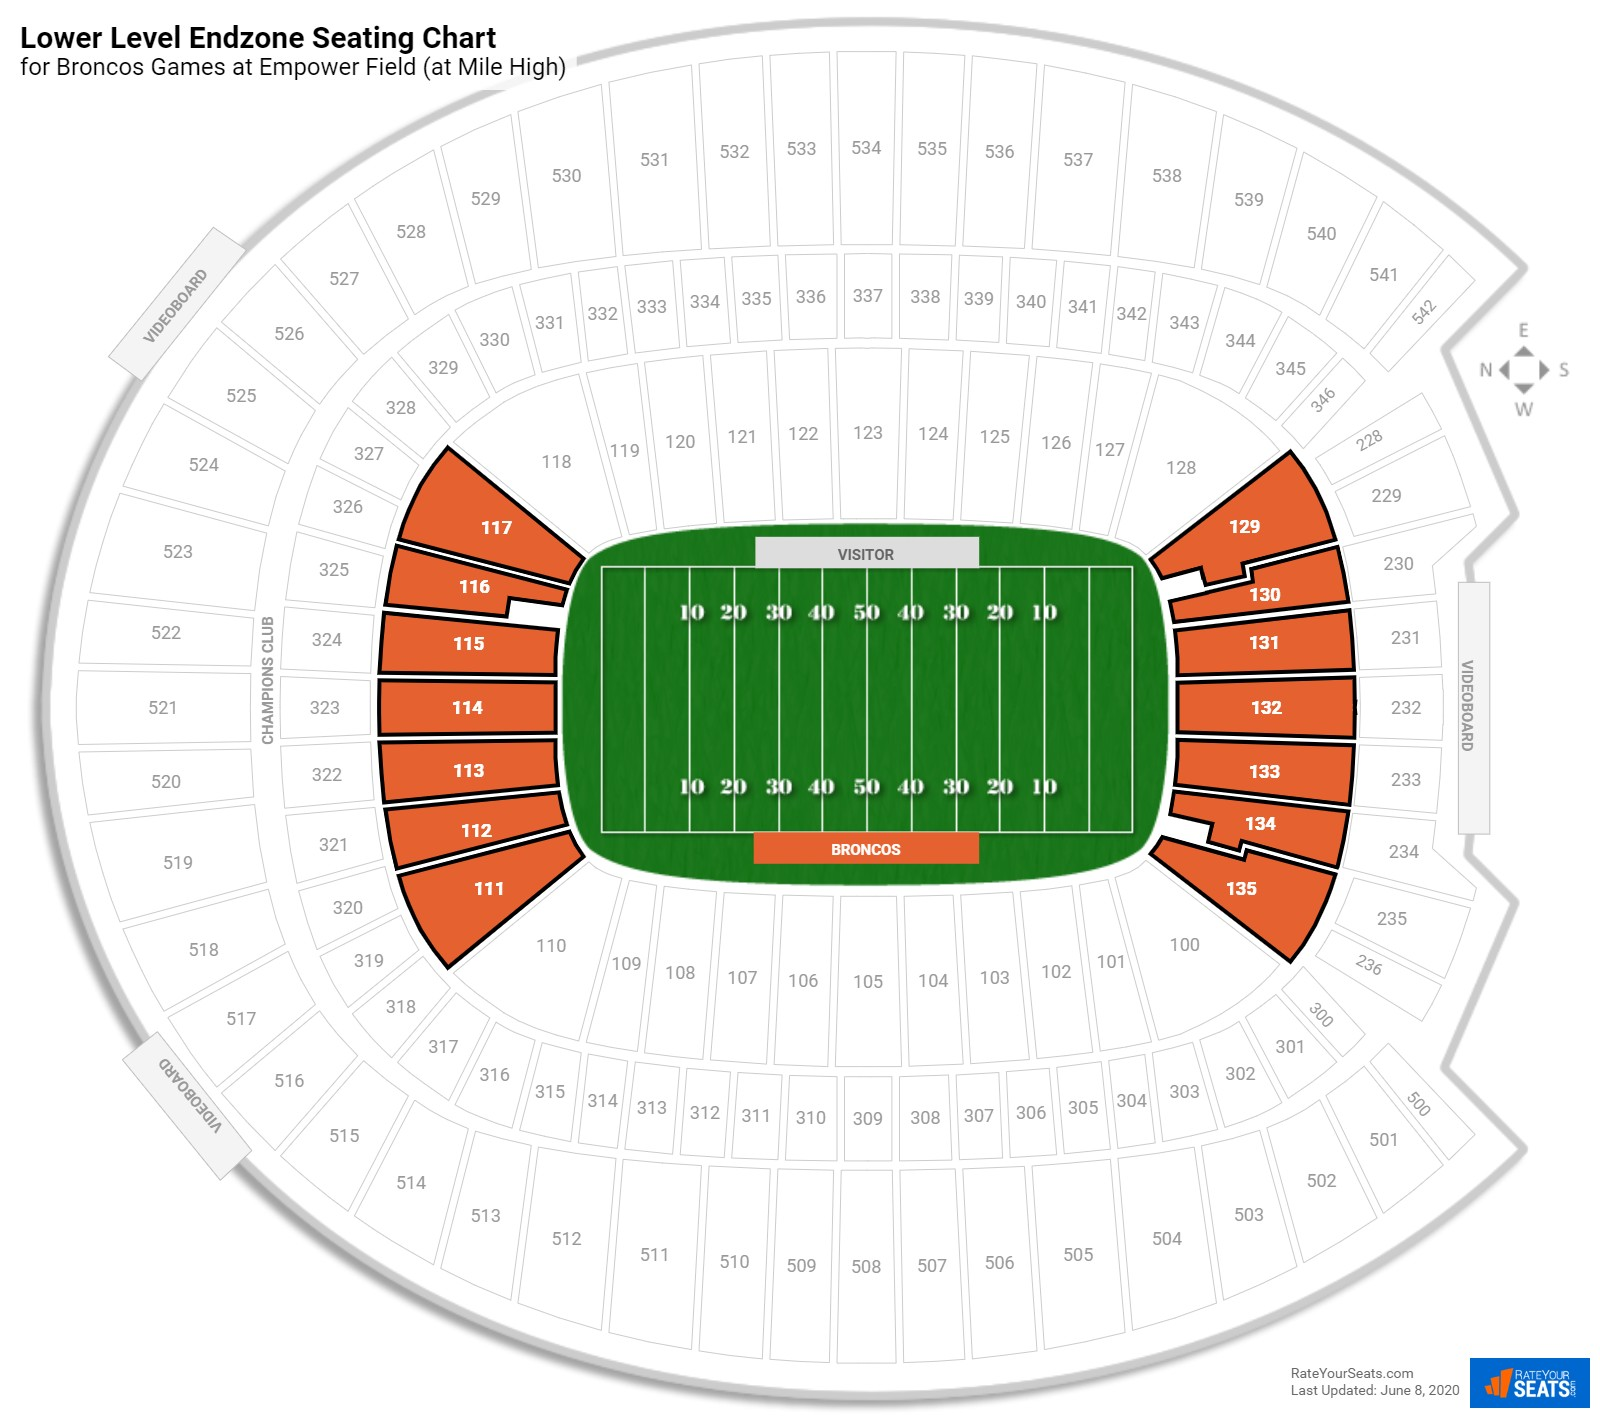 Sports Authority Field Lower Level Endzone seating chart